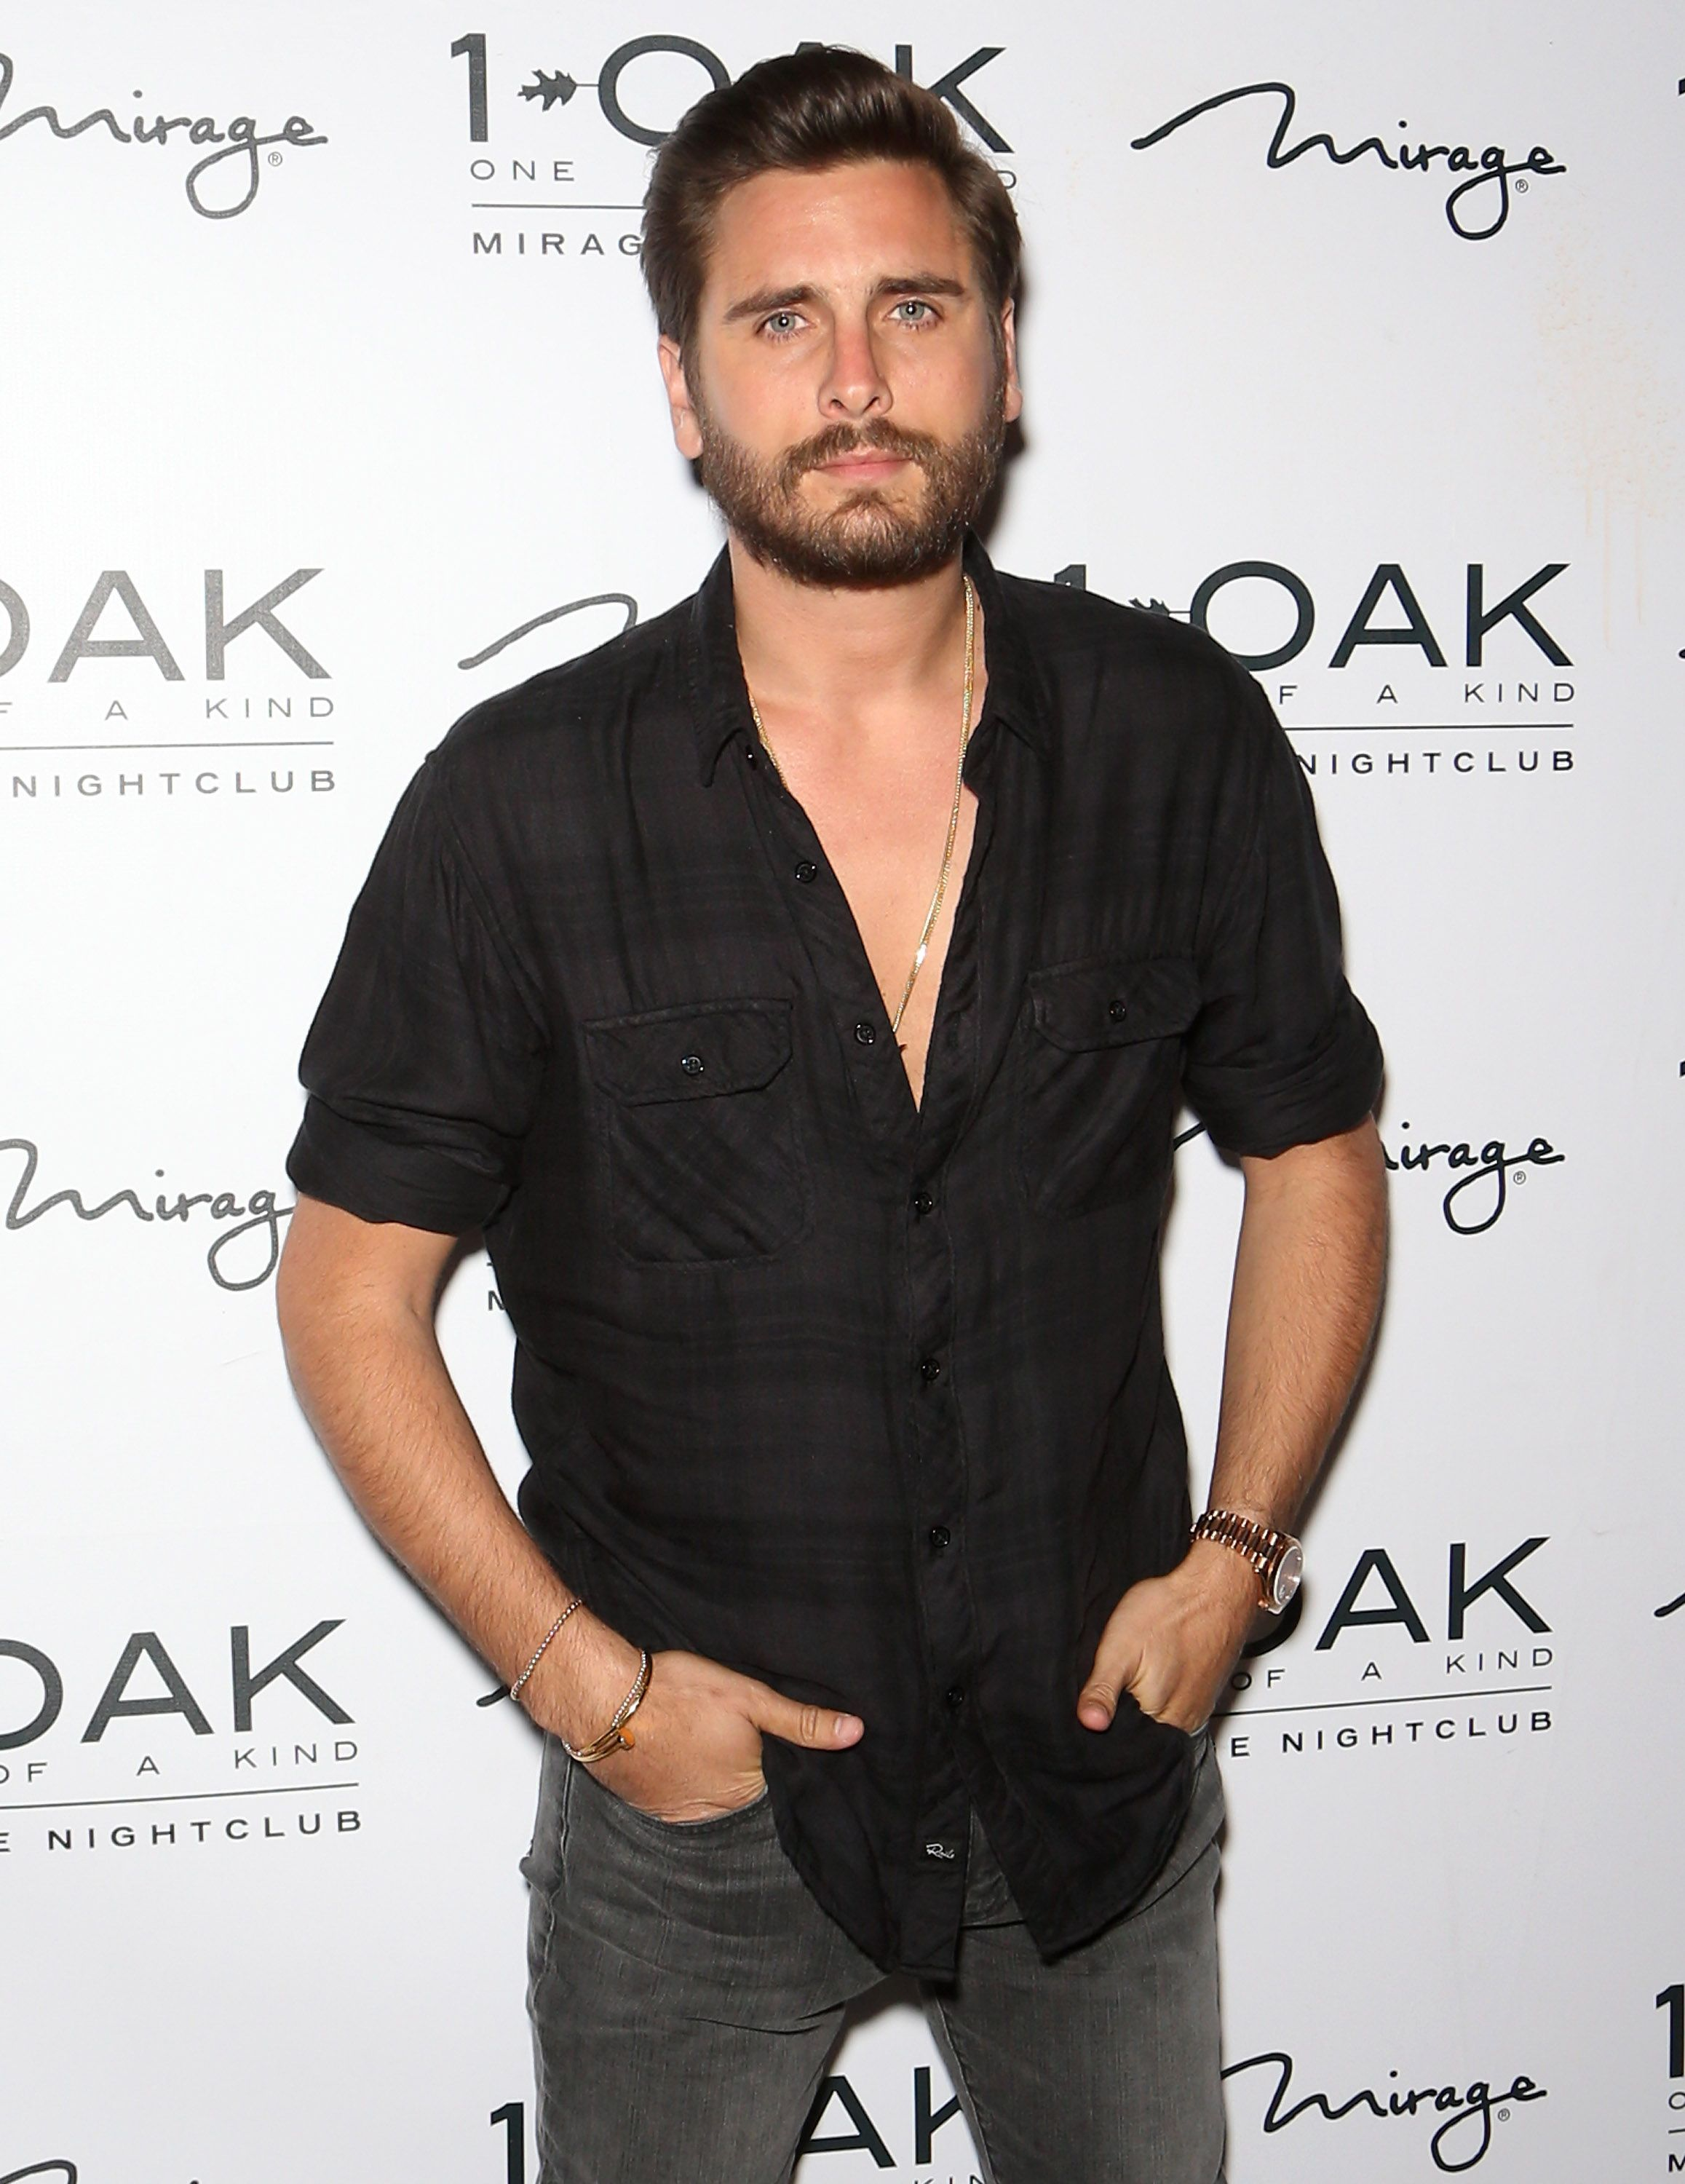 Scott Disick Has Landed a House-Flipping Reality Show, Aptly Titled Flip It Like Disick